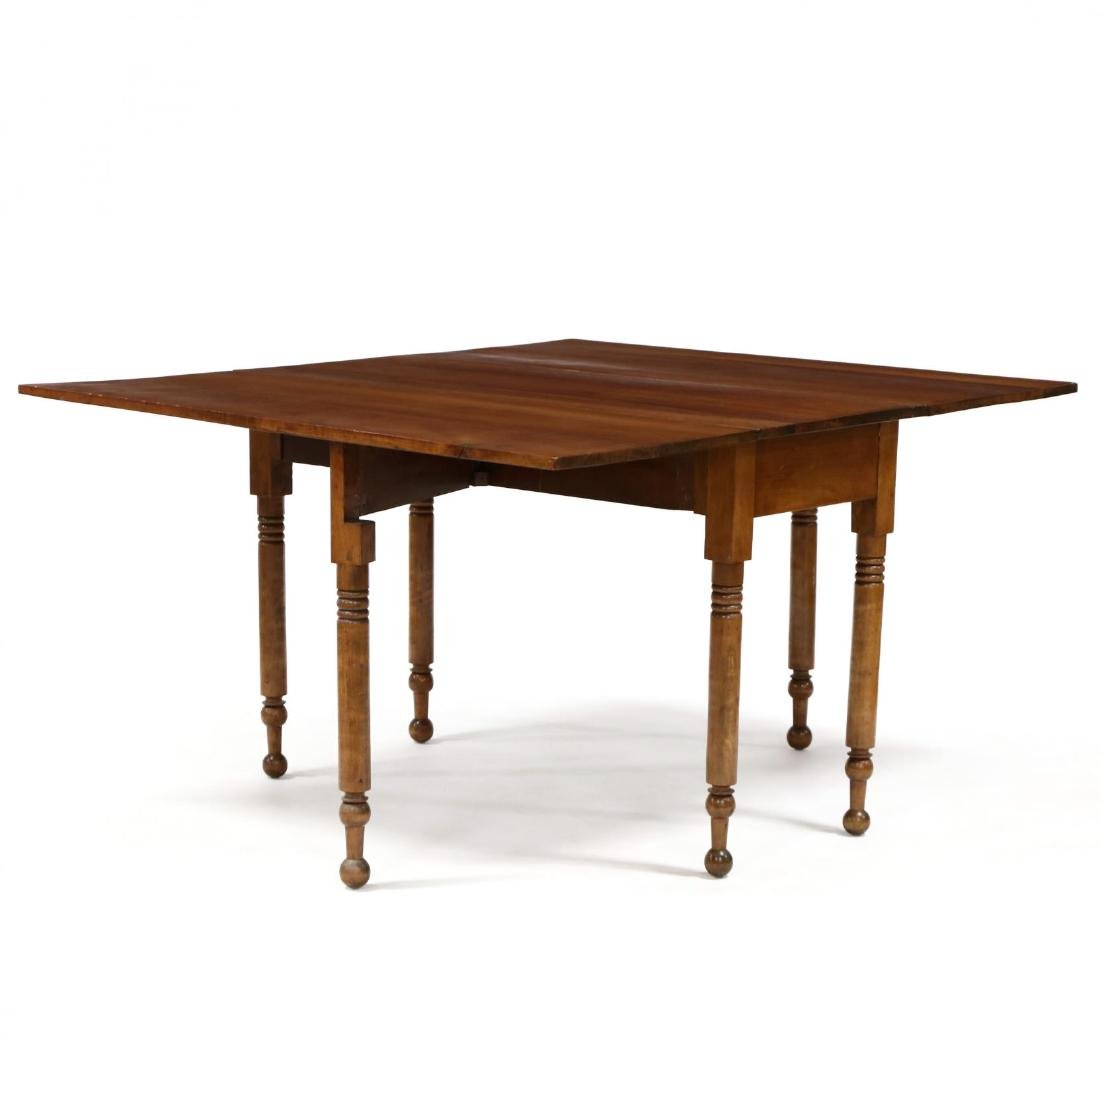 American Sheraton Cherry Dropleaf Dining Table - 2